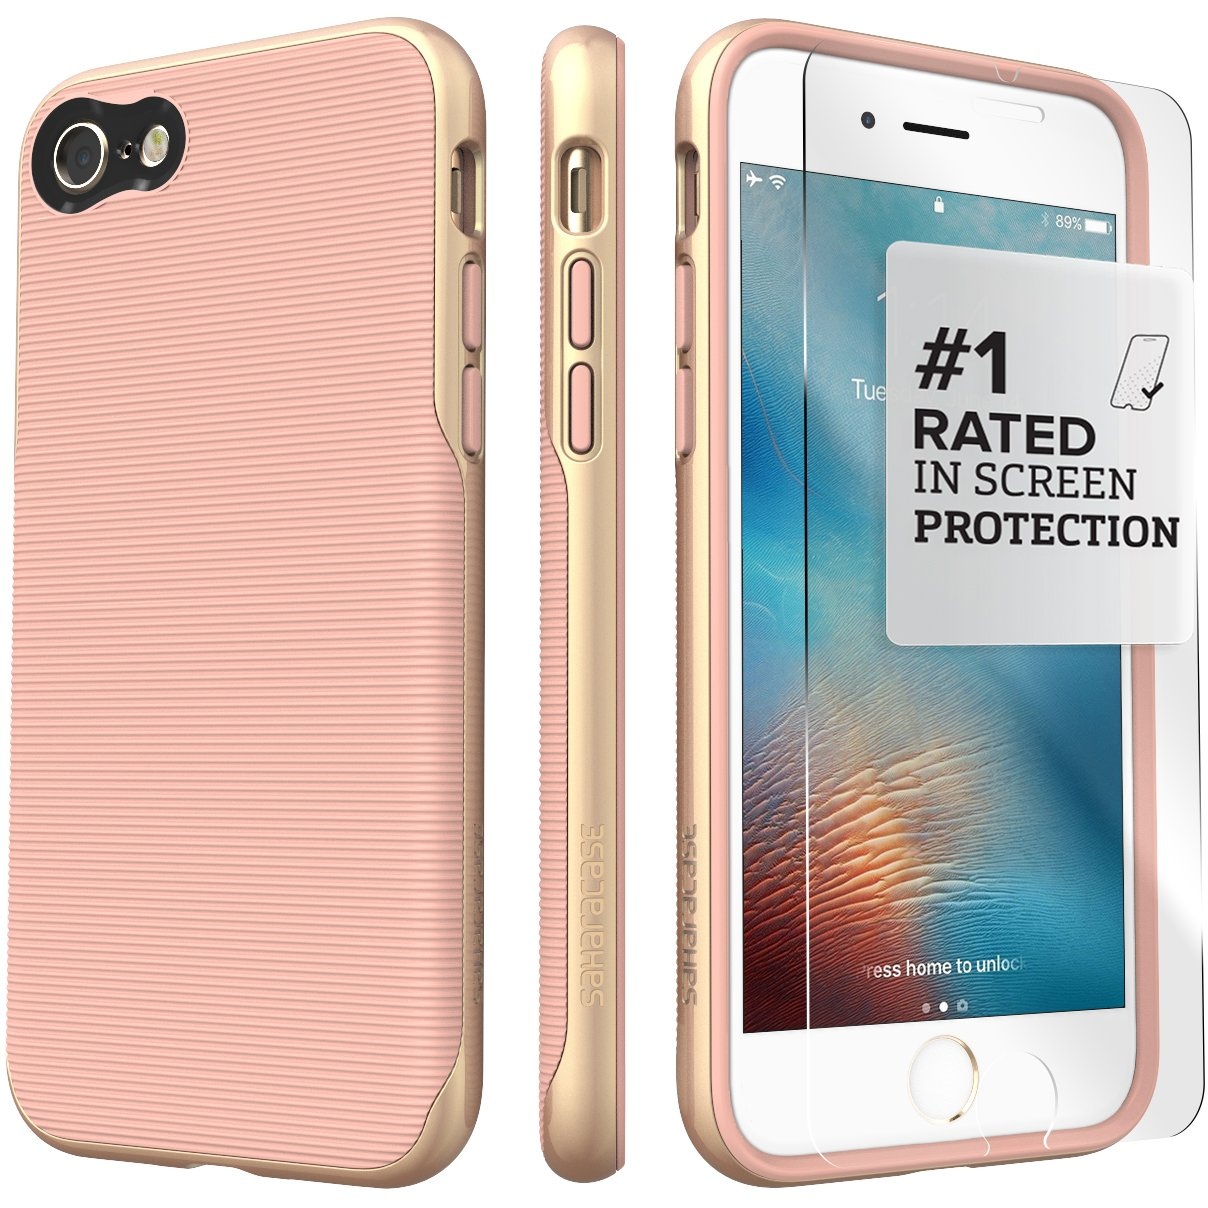 Saharacase iphone 6 6s crystal clear case rose gold edge saharacase - Amazon Com Iphone 8 Case And 7 Case Saharacase Trend Series Protection Kit Bundle With Zerodamage Tempered Glass Screen Protector Fashion Design